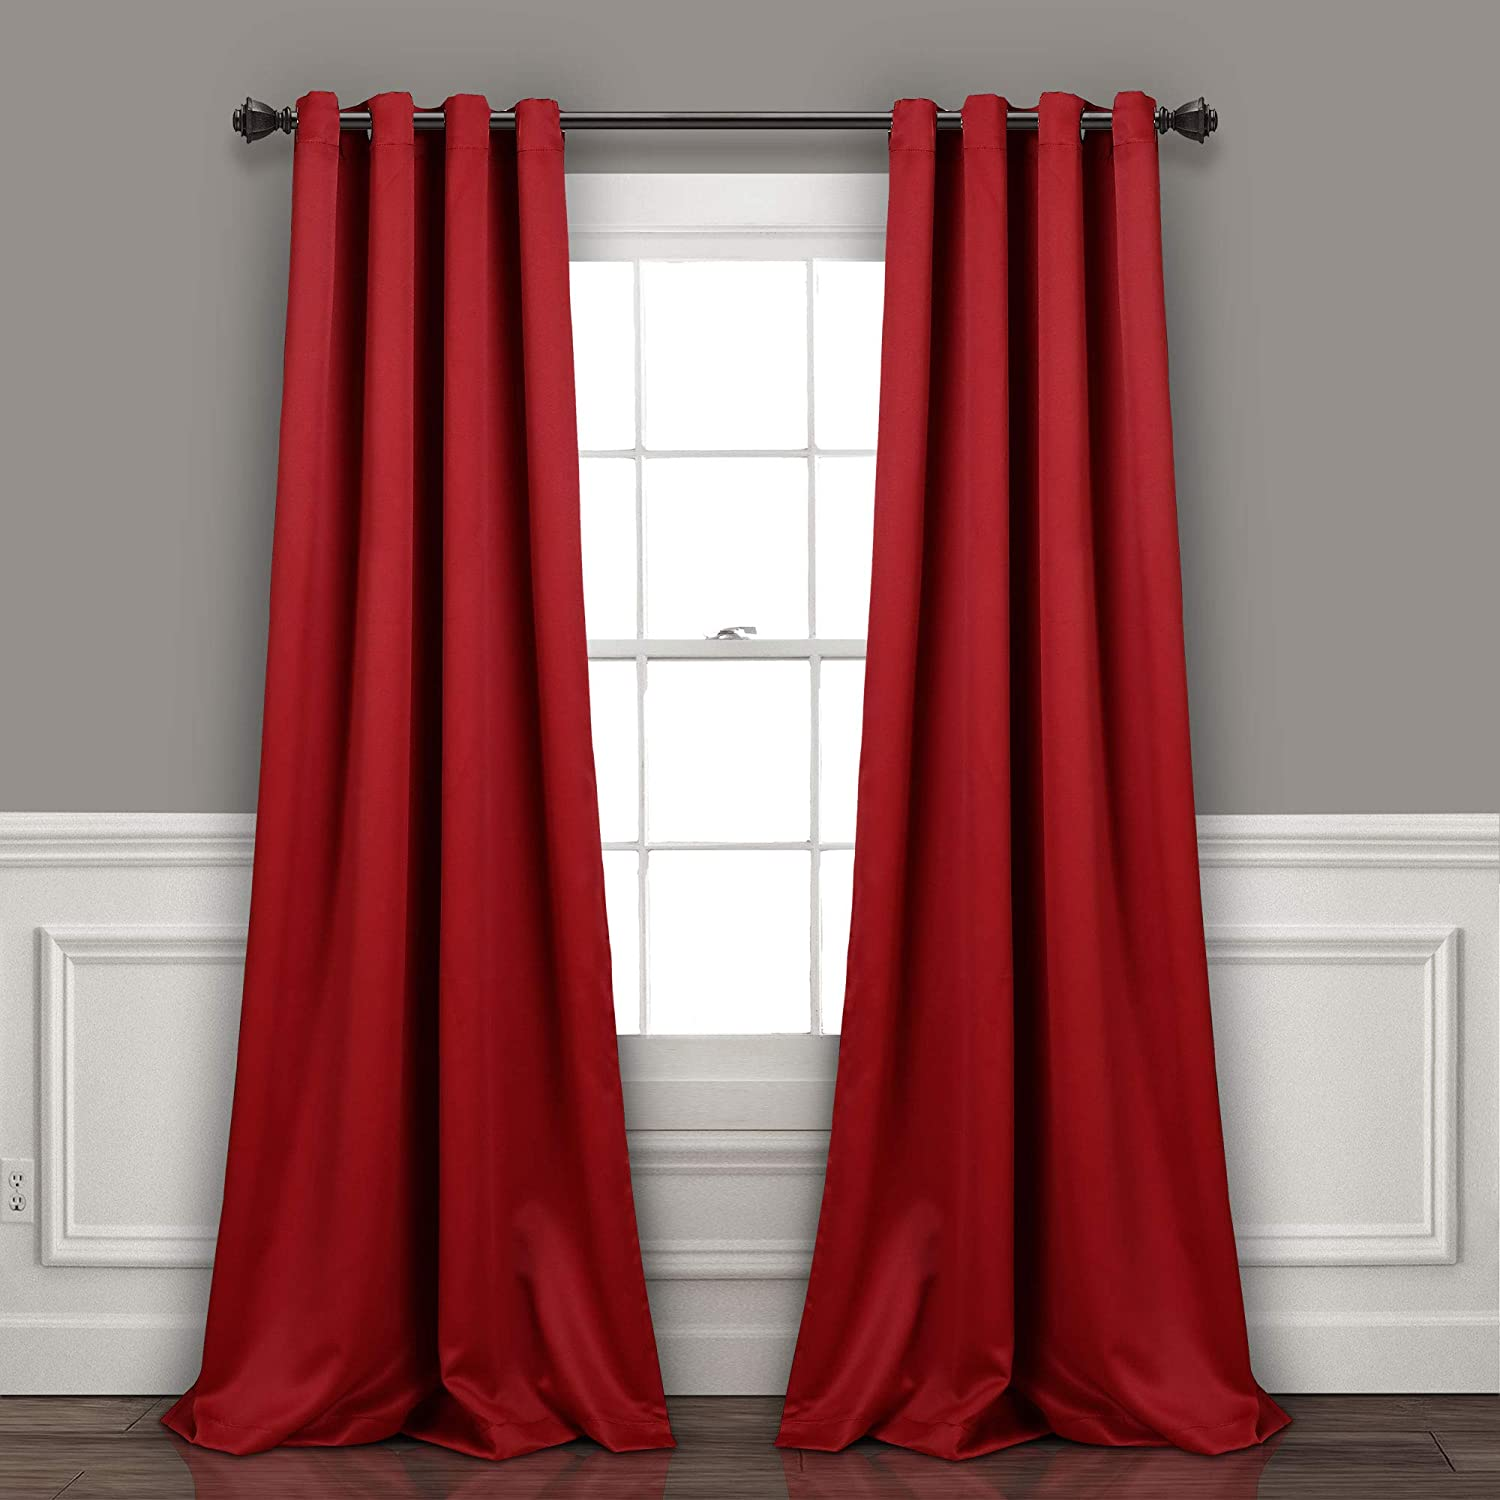 "Lush Decor Curtains-Grommet Panel with Insulated Blackout Lining, 95"" L Pair, Red"